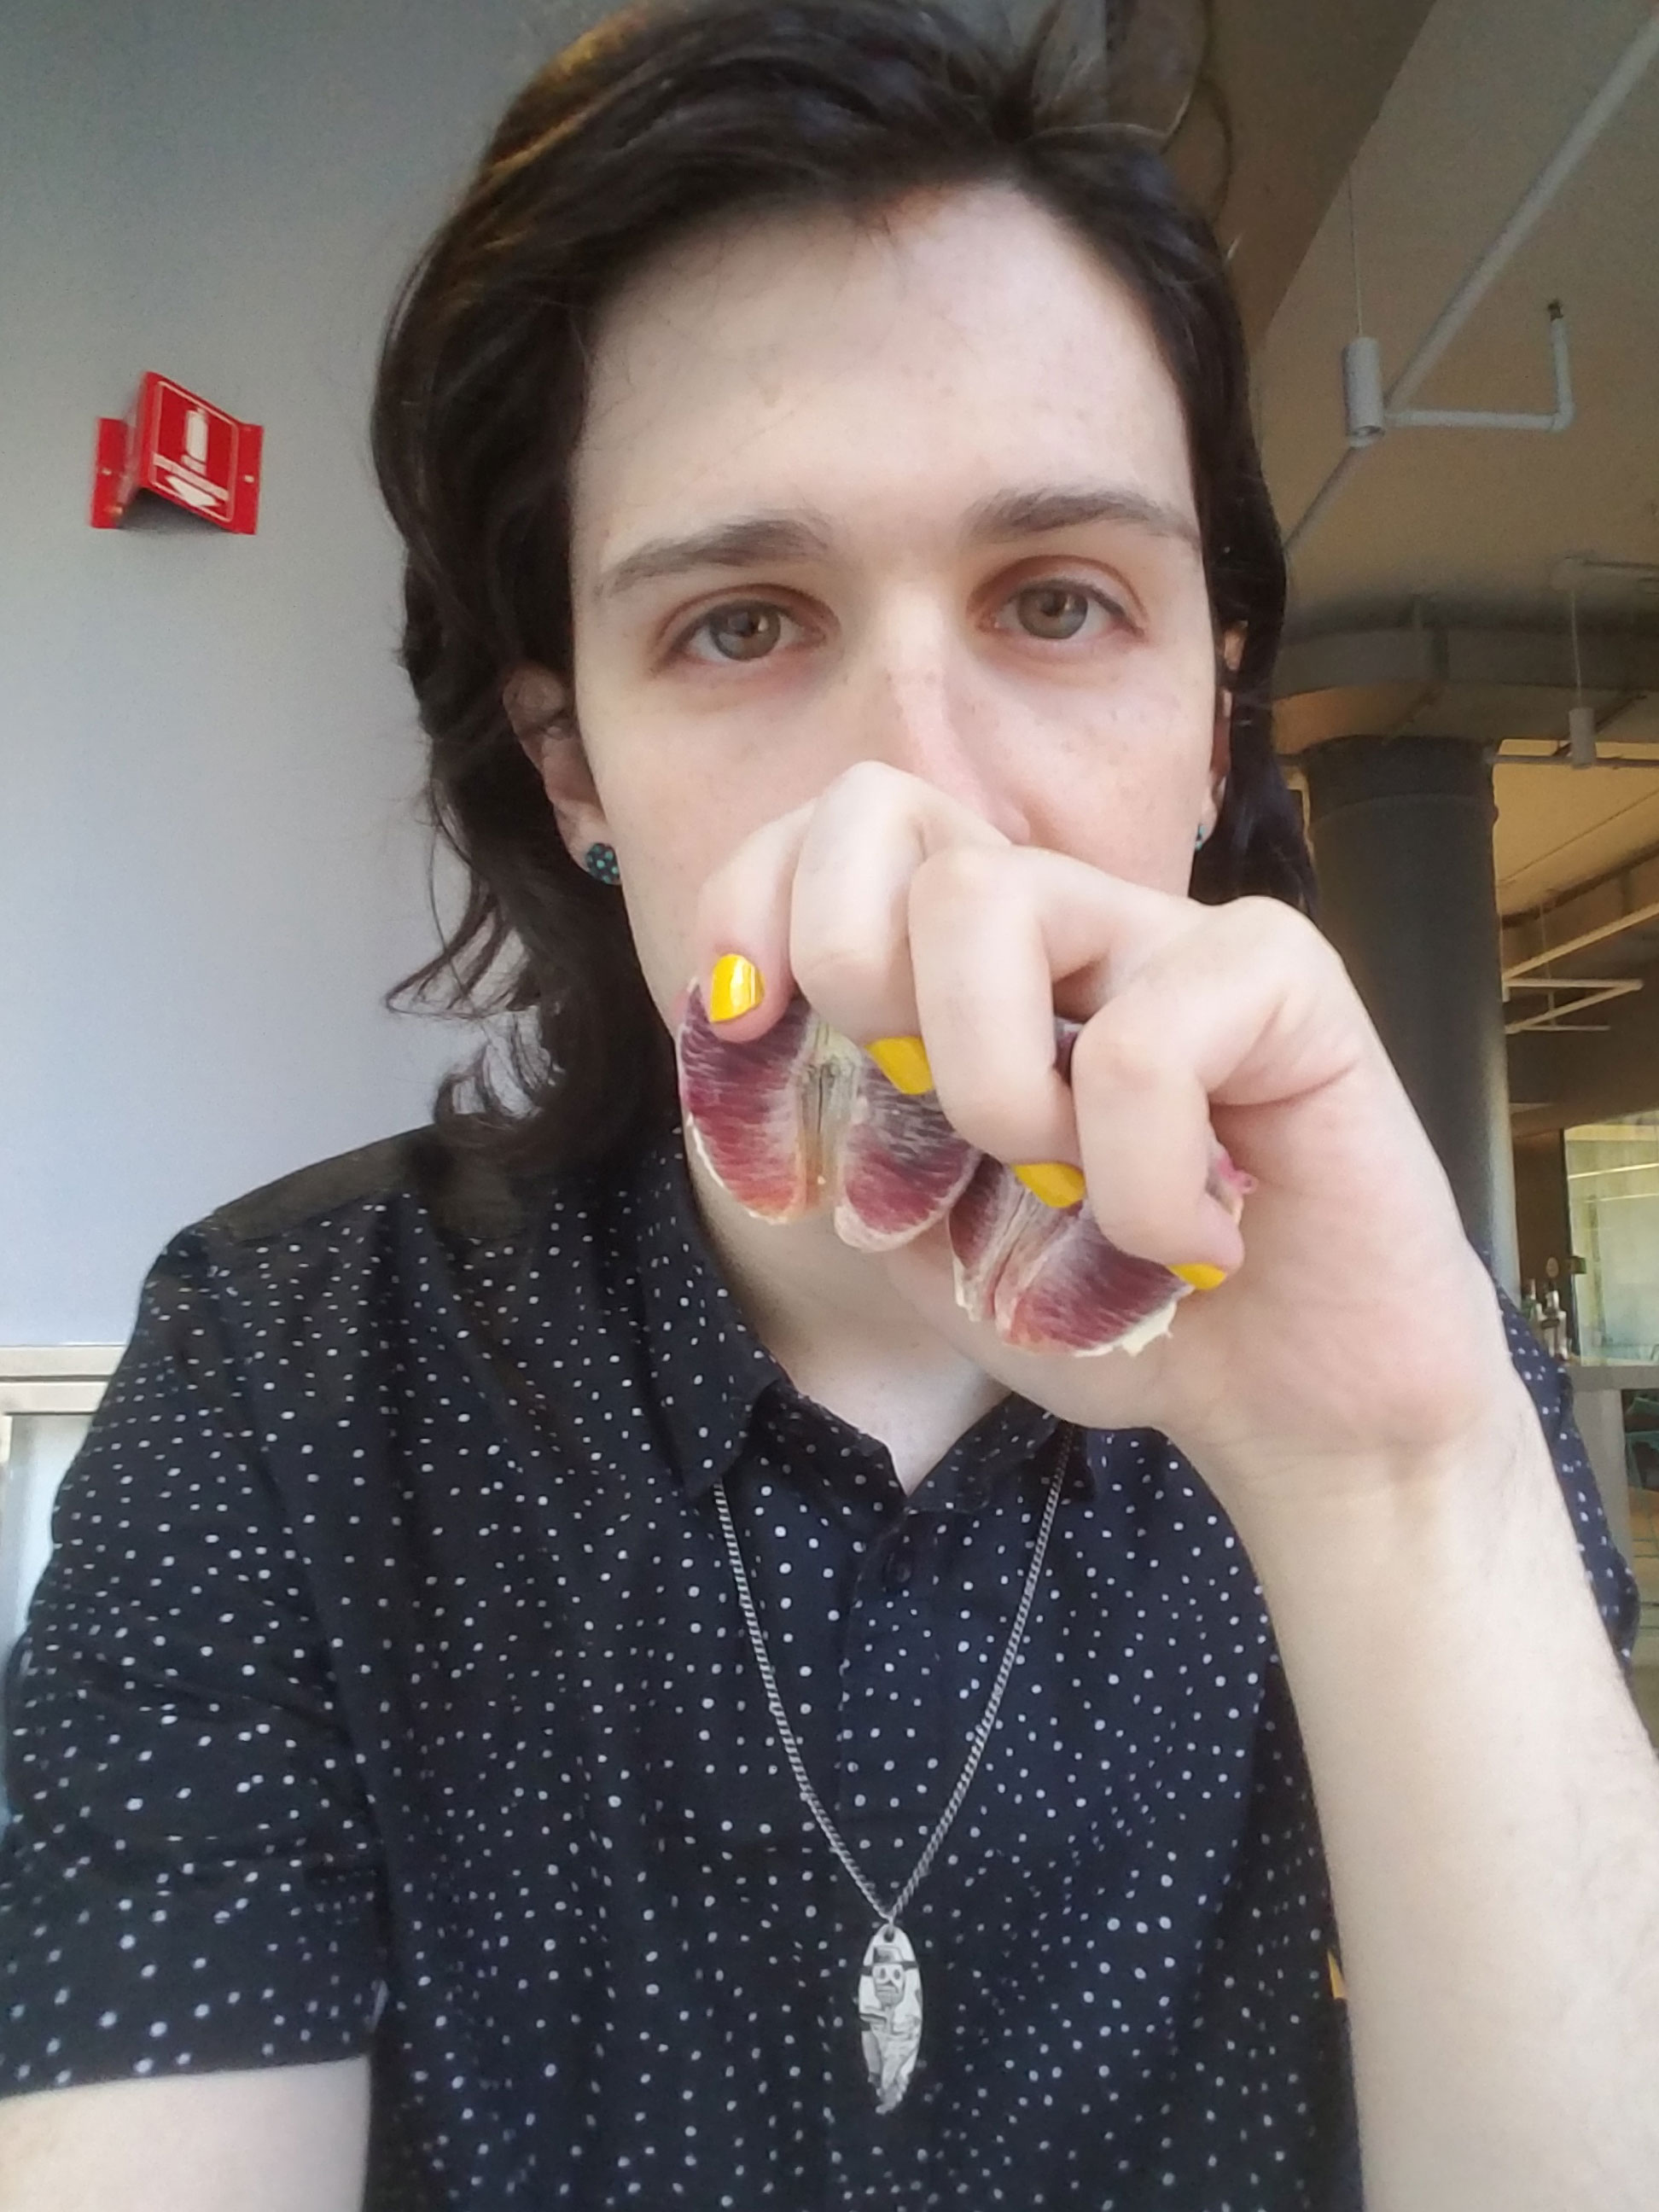 A selfie of a person, wearing a black and white dotted shirt and bright yellow nail polish, and holding two halves of blood orange segments in front of their mouth.